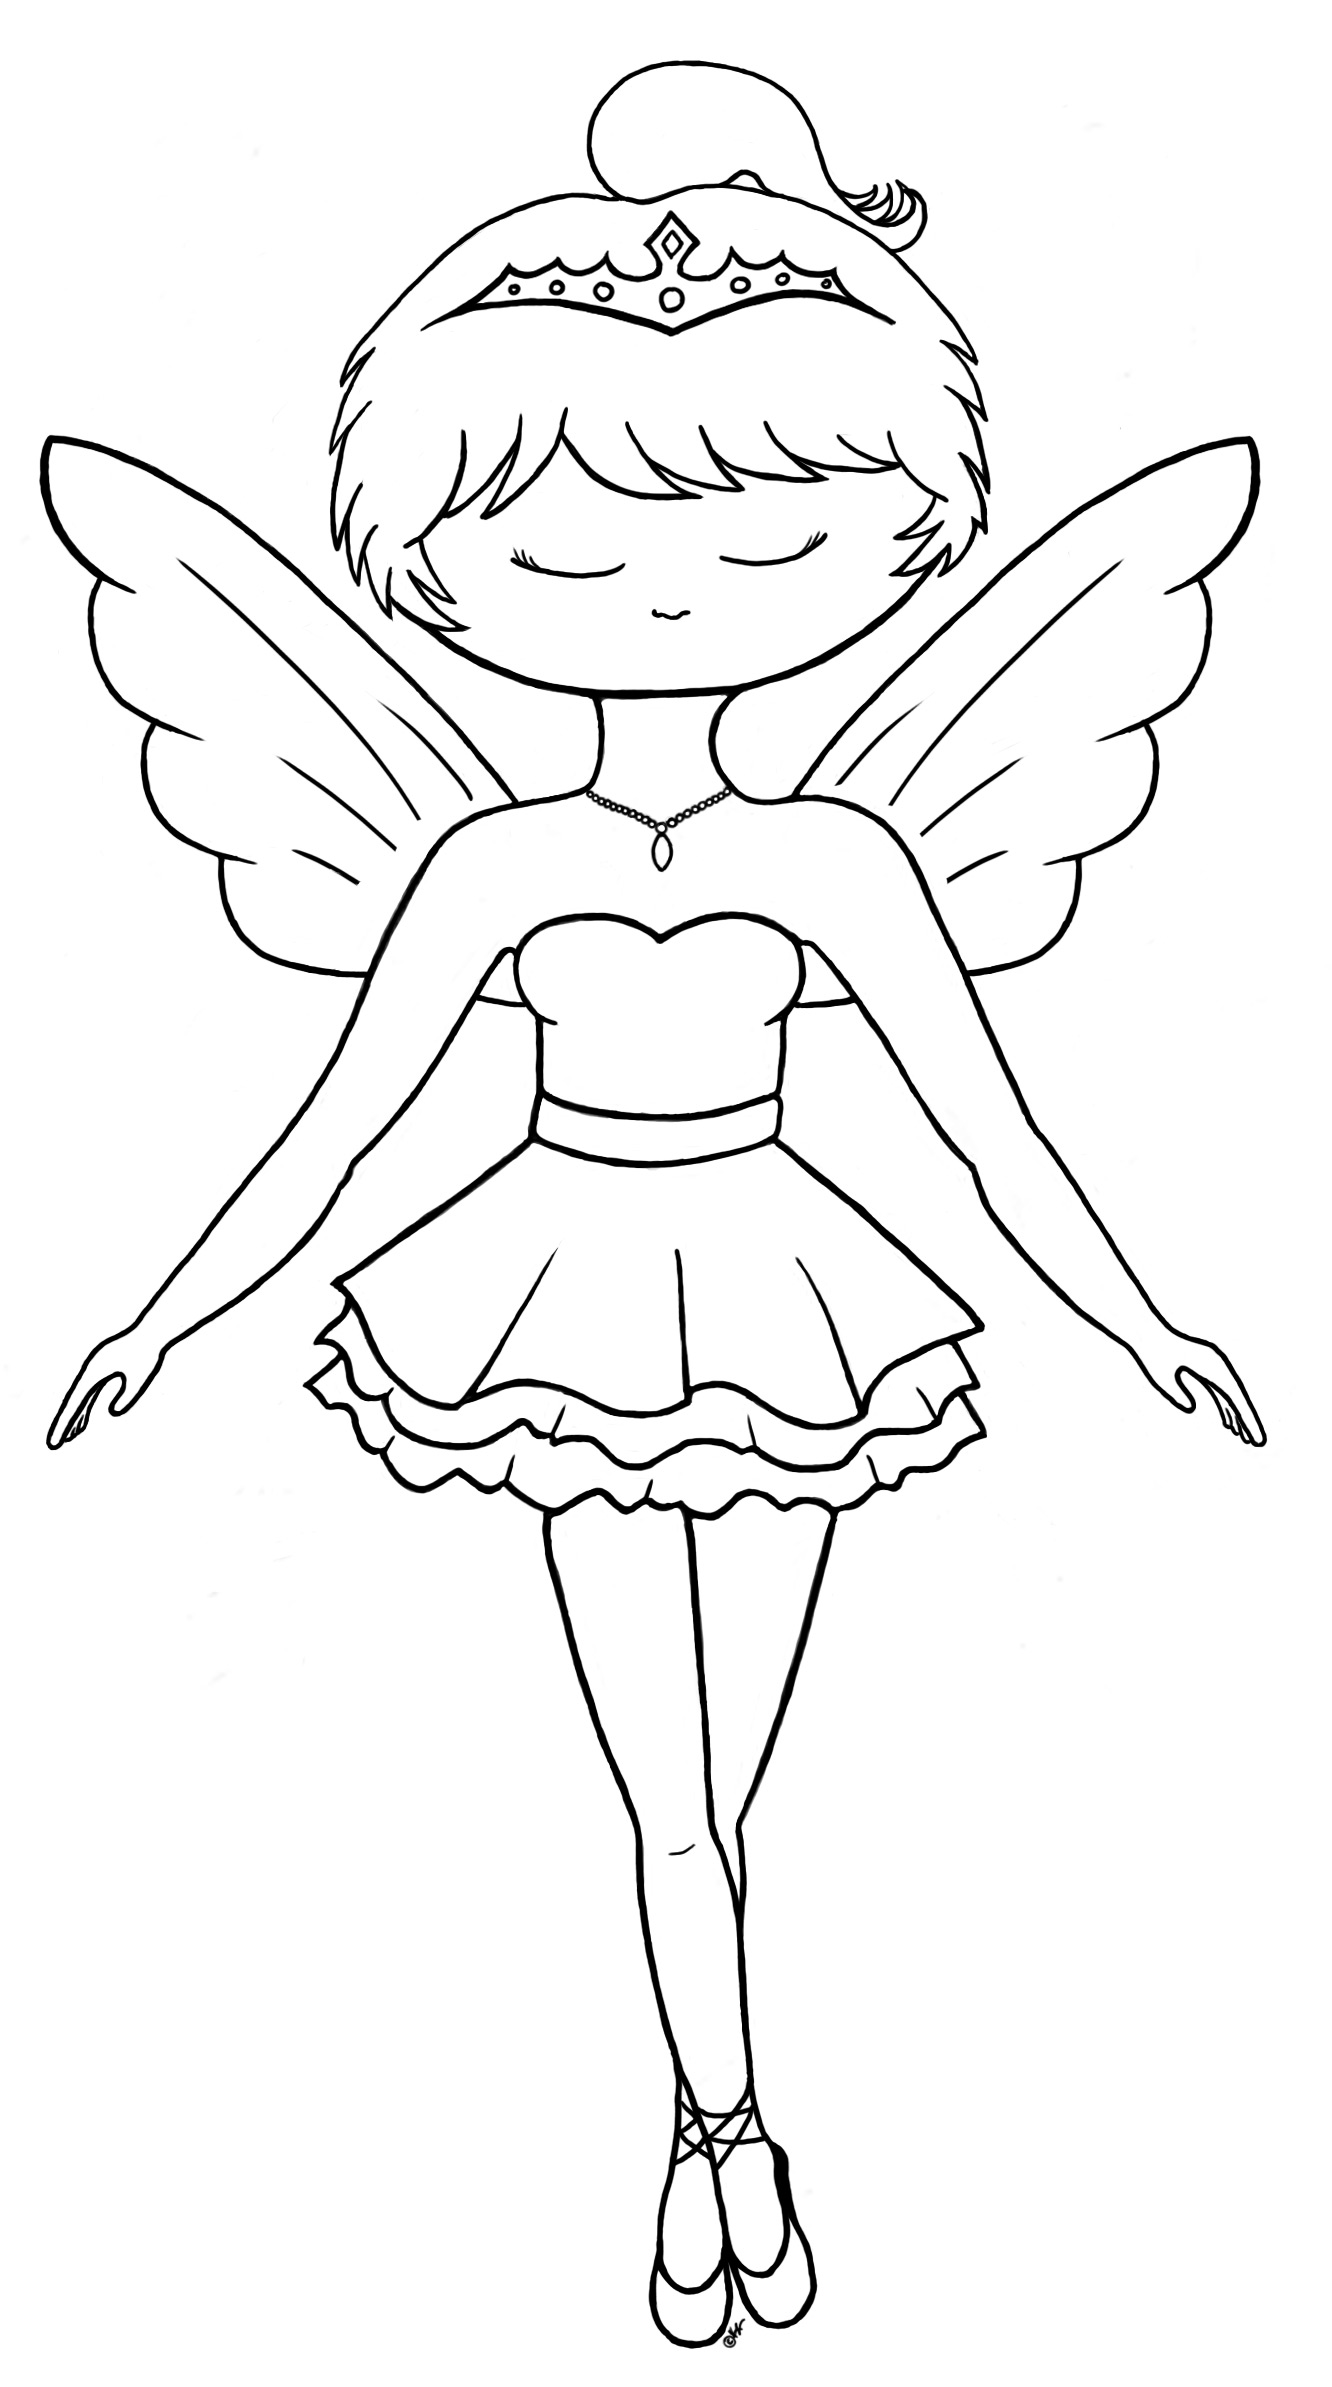 ballerina to color ballerina coloring pages for childrens printable for free ballerina color to